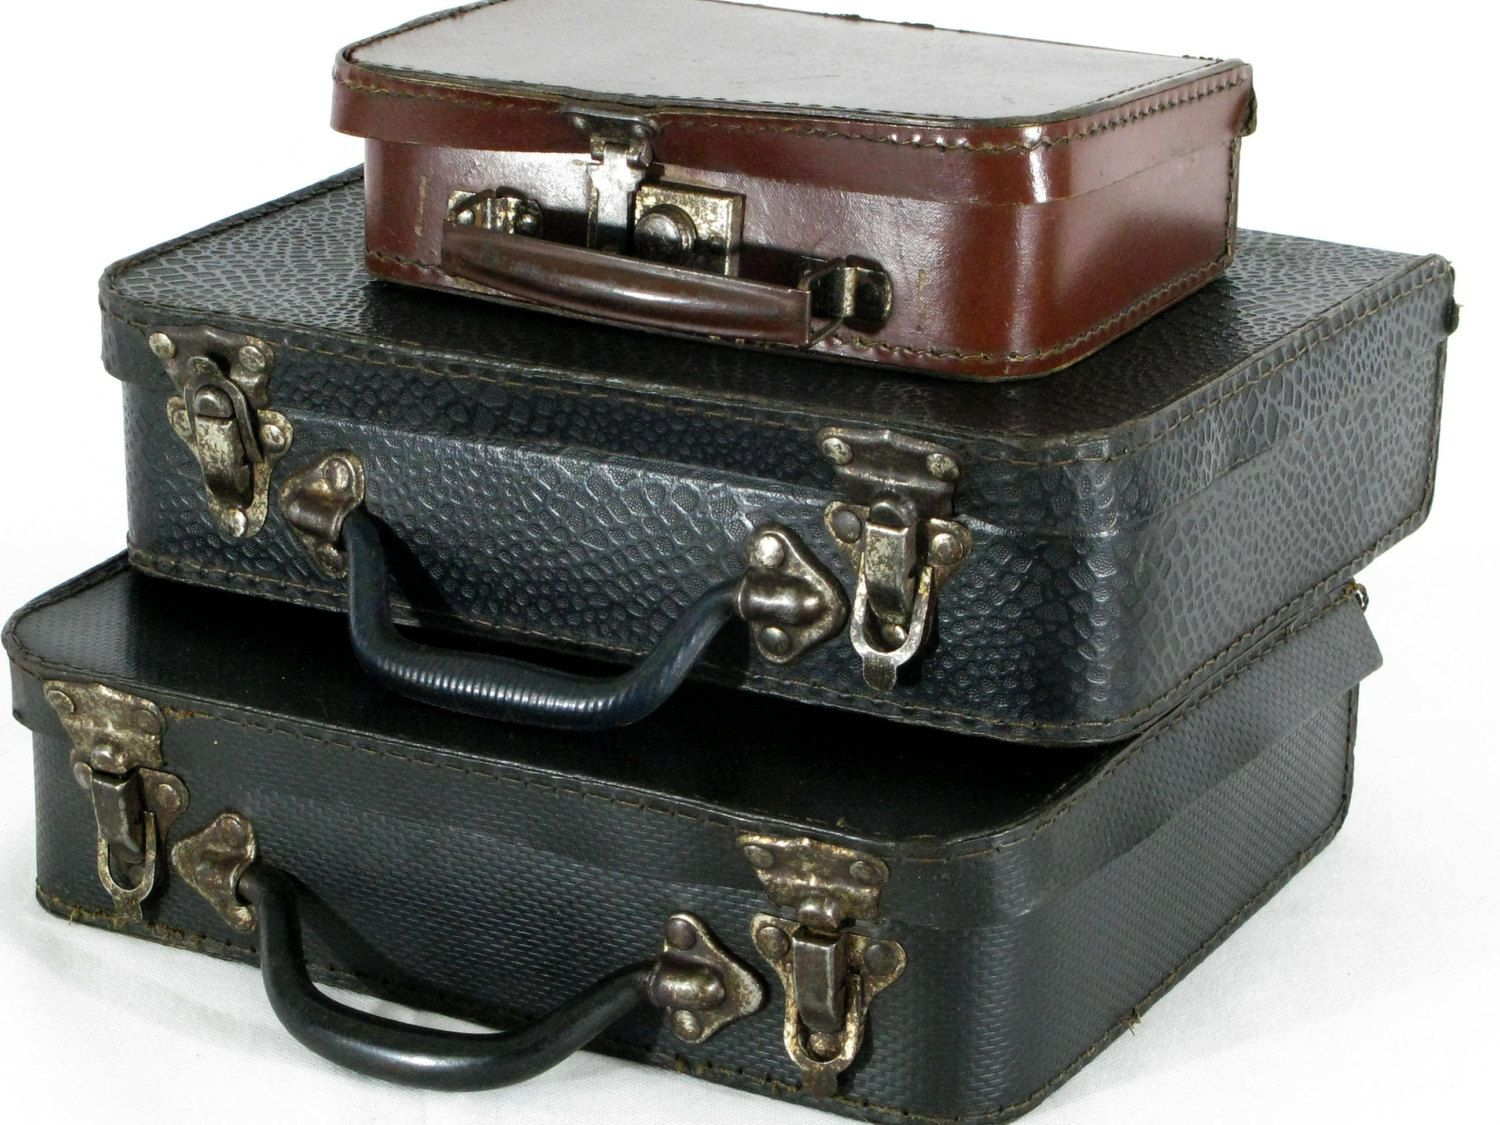 Small Vintage Suitcase For Sale